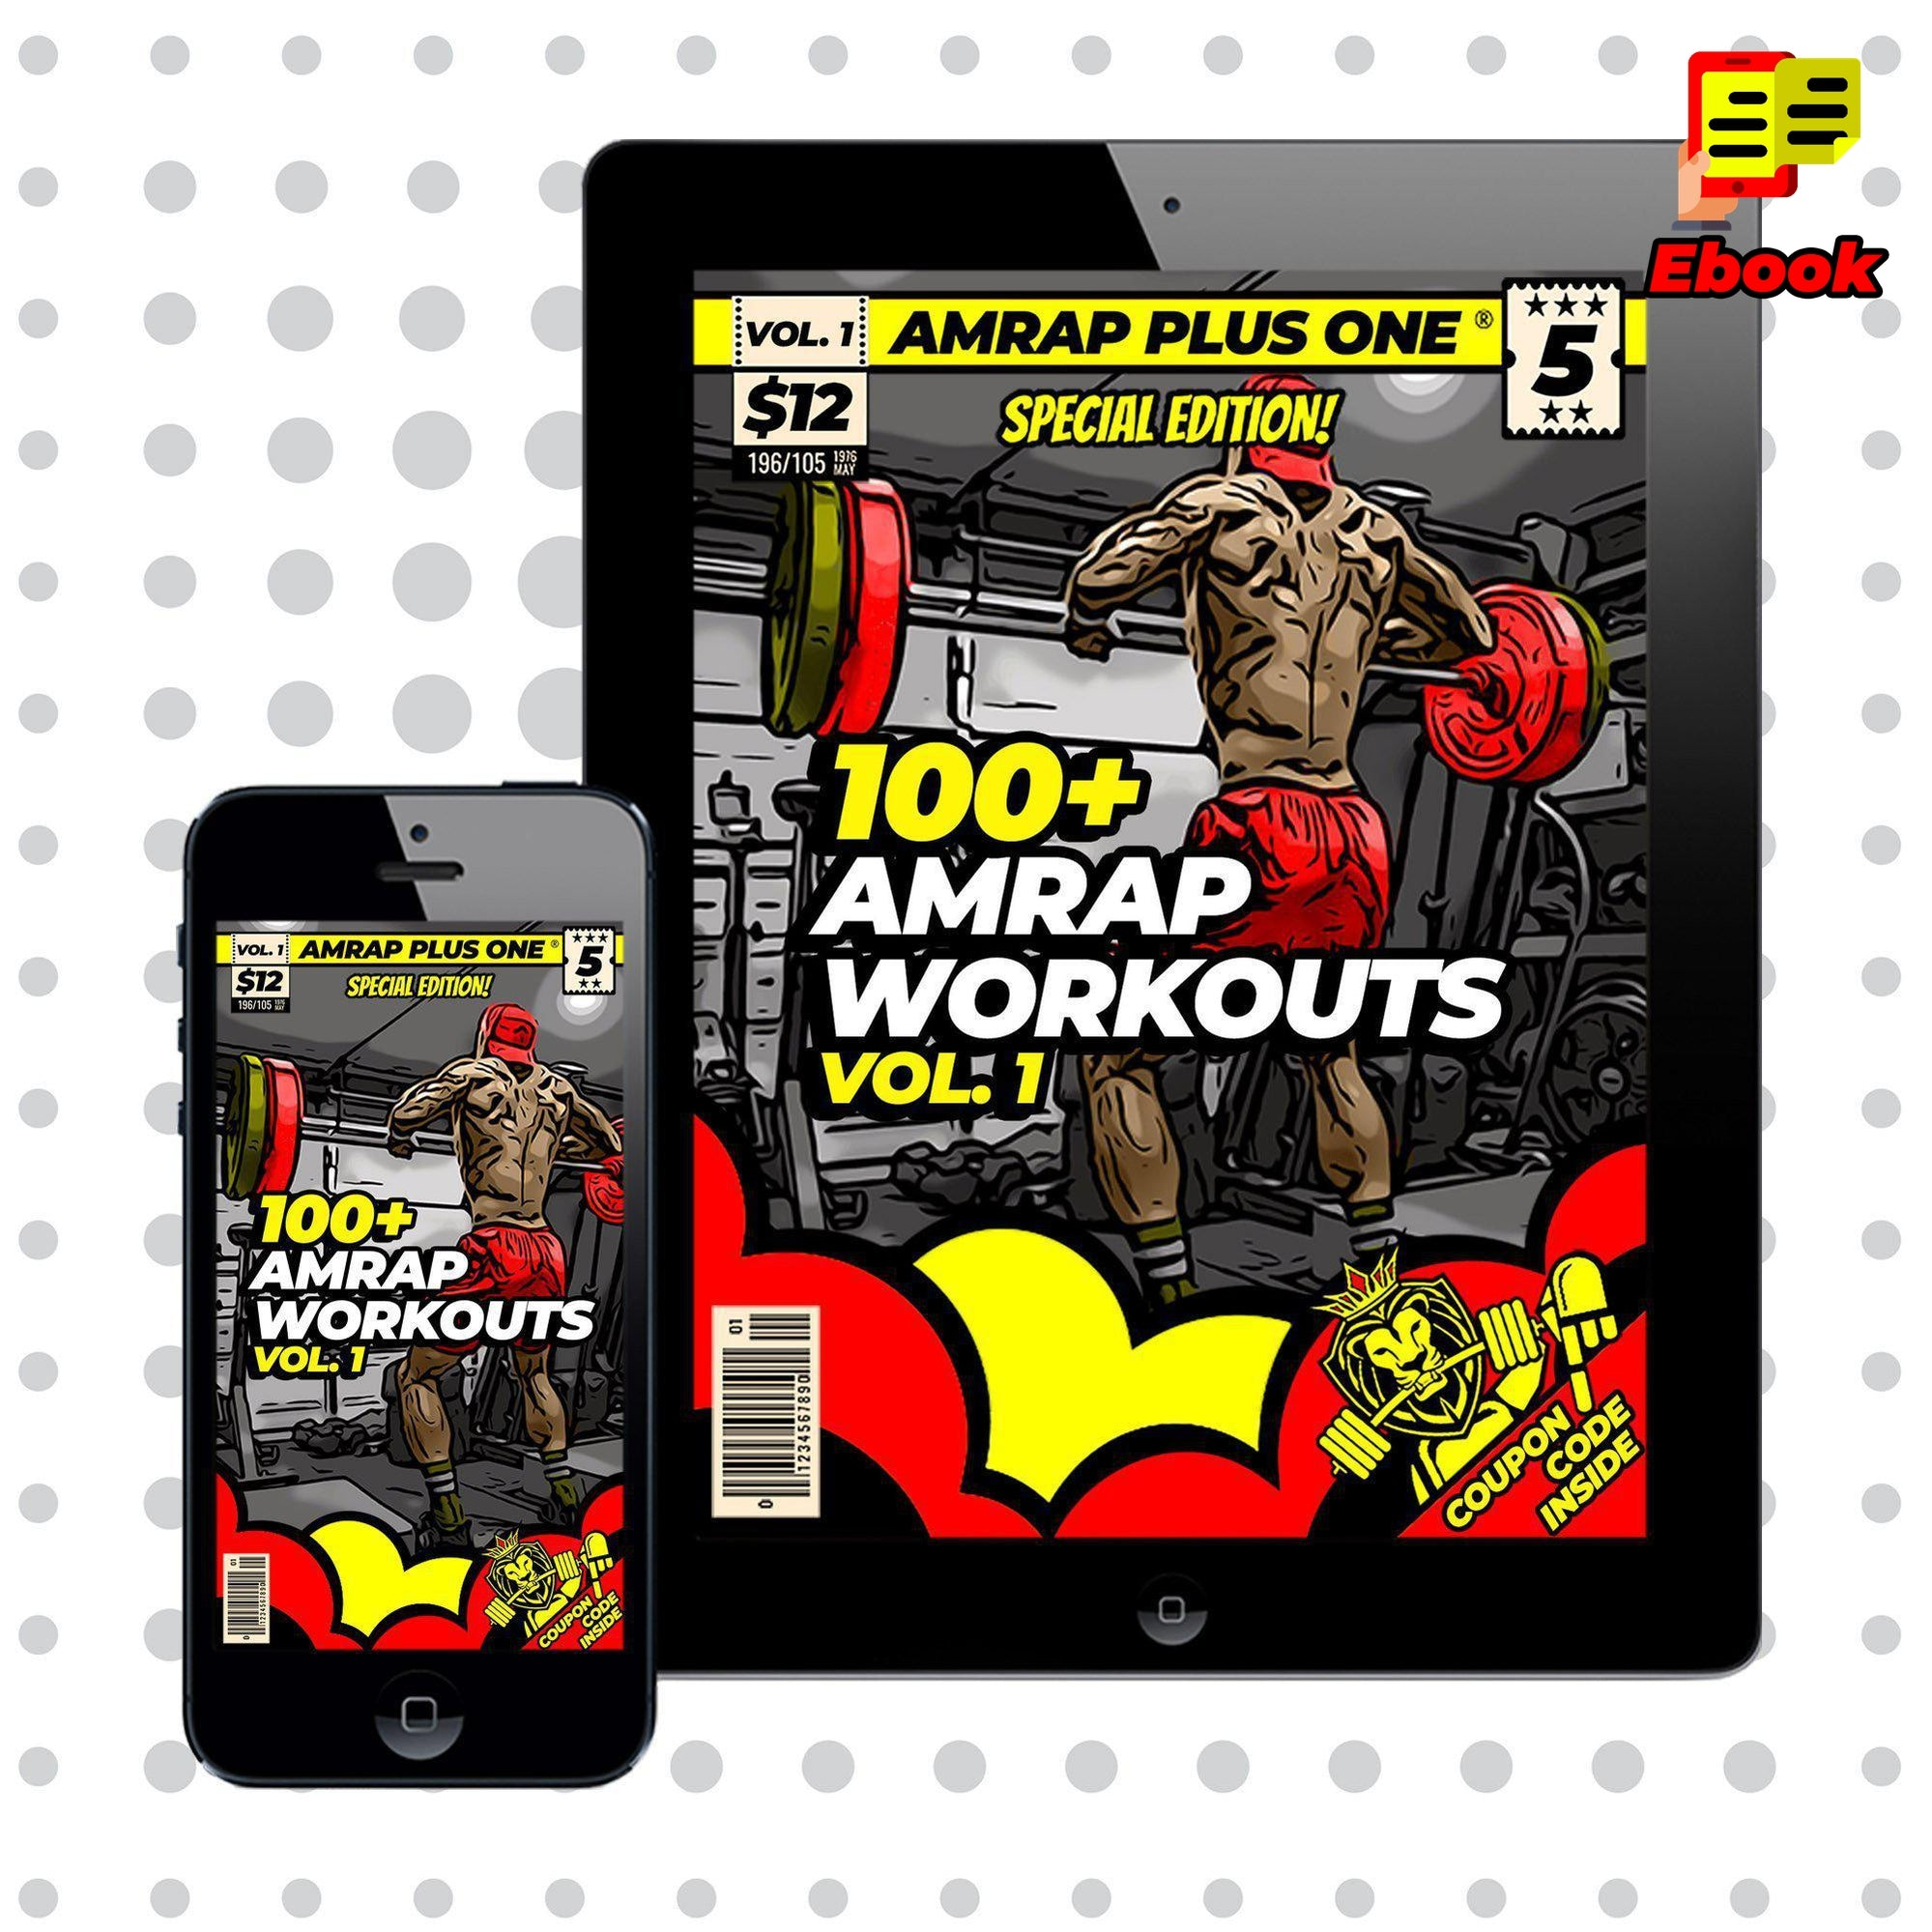 100+ AMRAP Workouts Vol. 1 - AMRAP Plus One